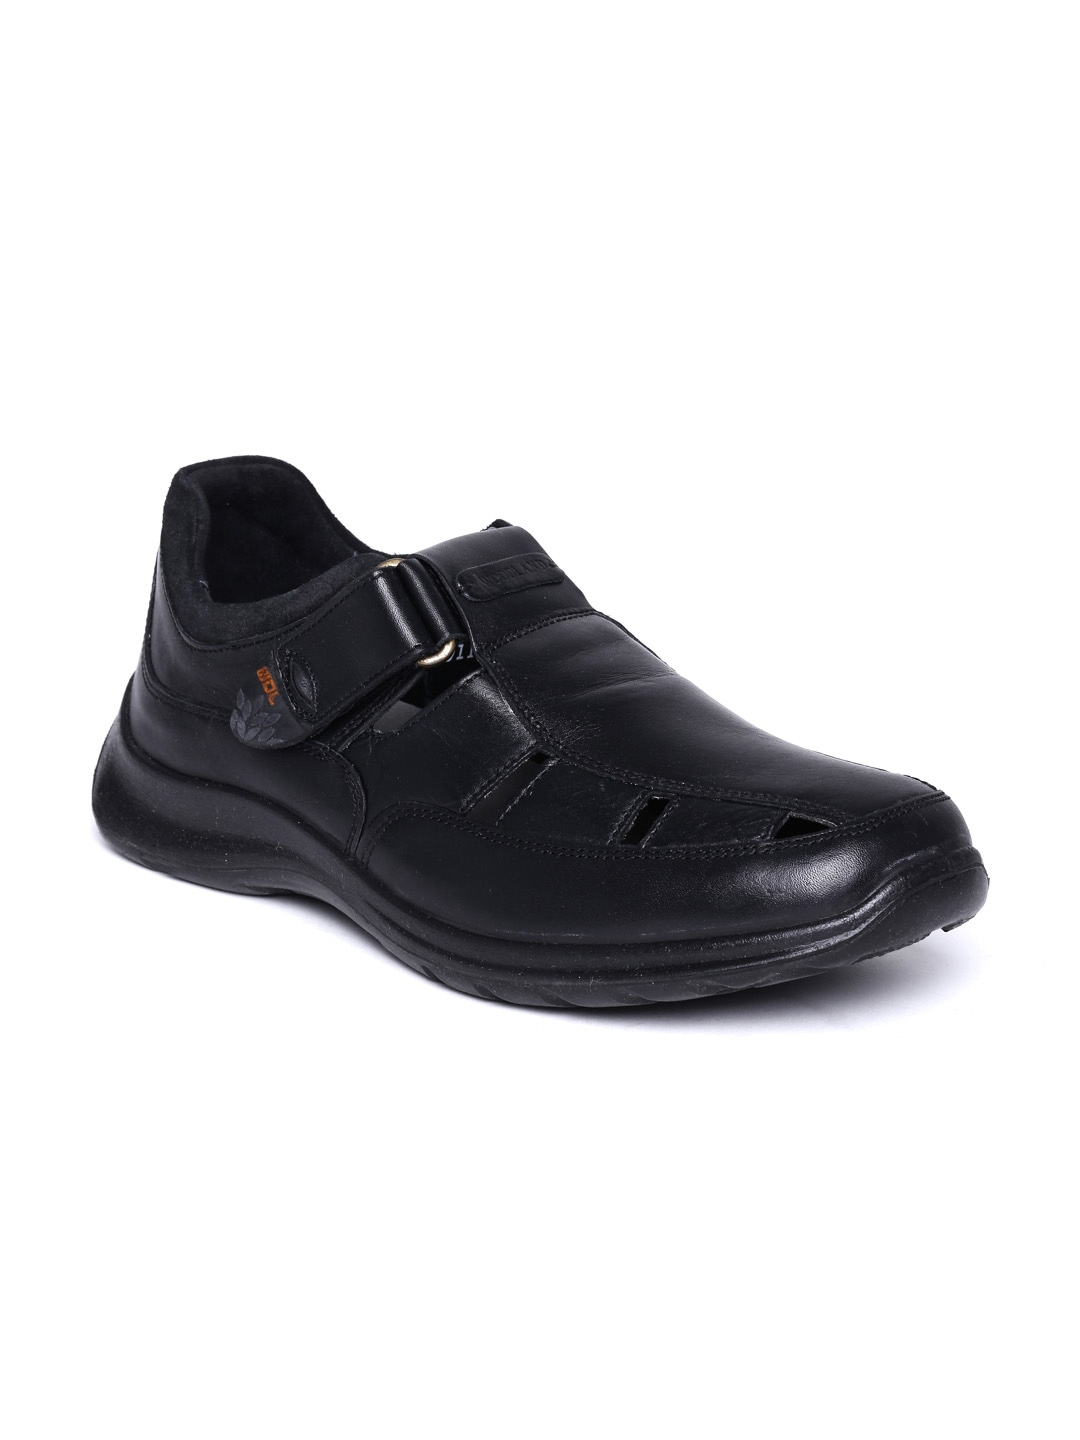 myntra woodland black leather casual shoes 563760